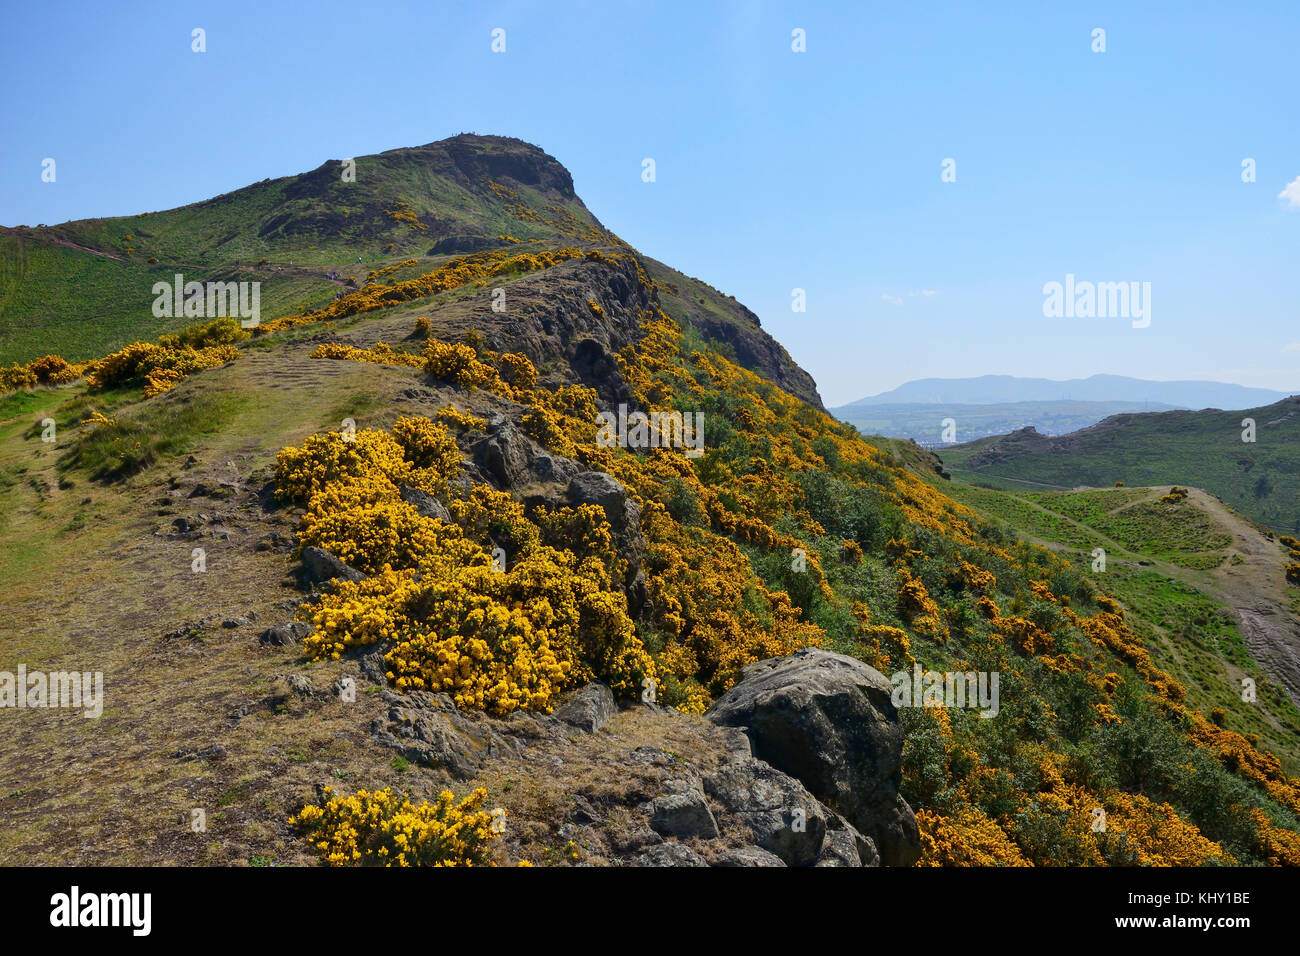 Ascent up Whinny Hill to Arthur's Seat in Holyrood Park, Edinburgh, Scotland - Stock Image